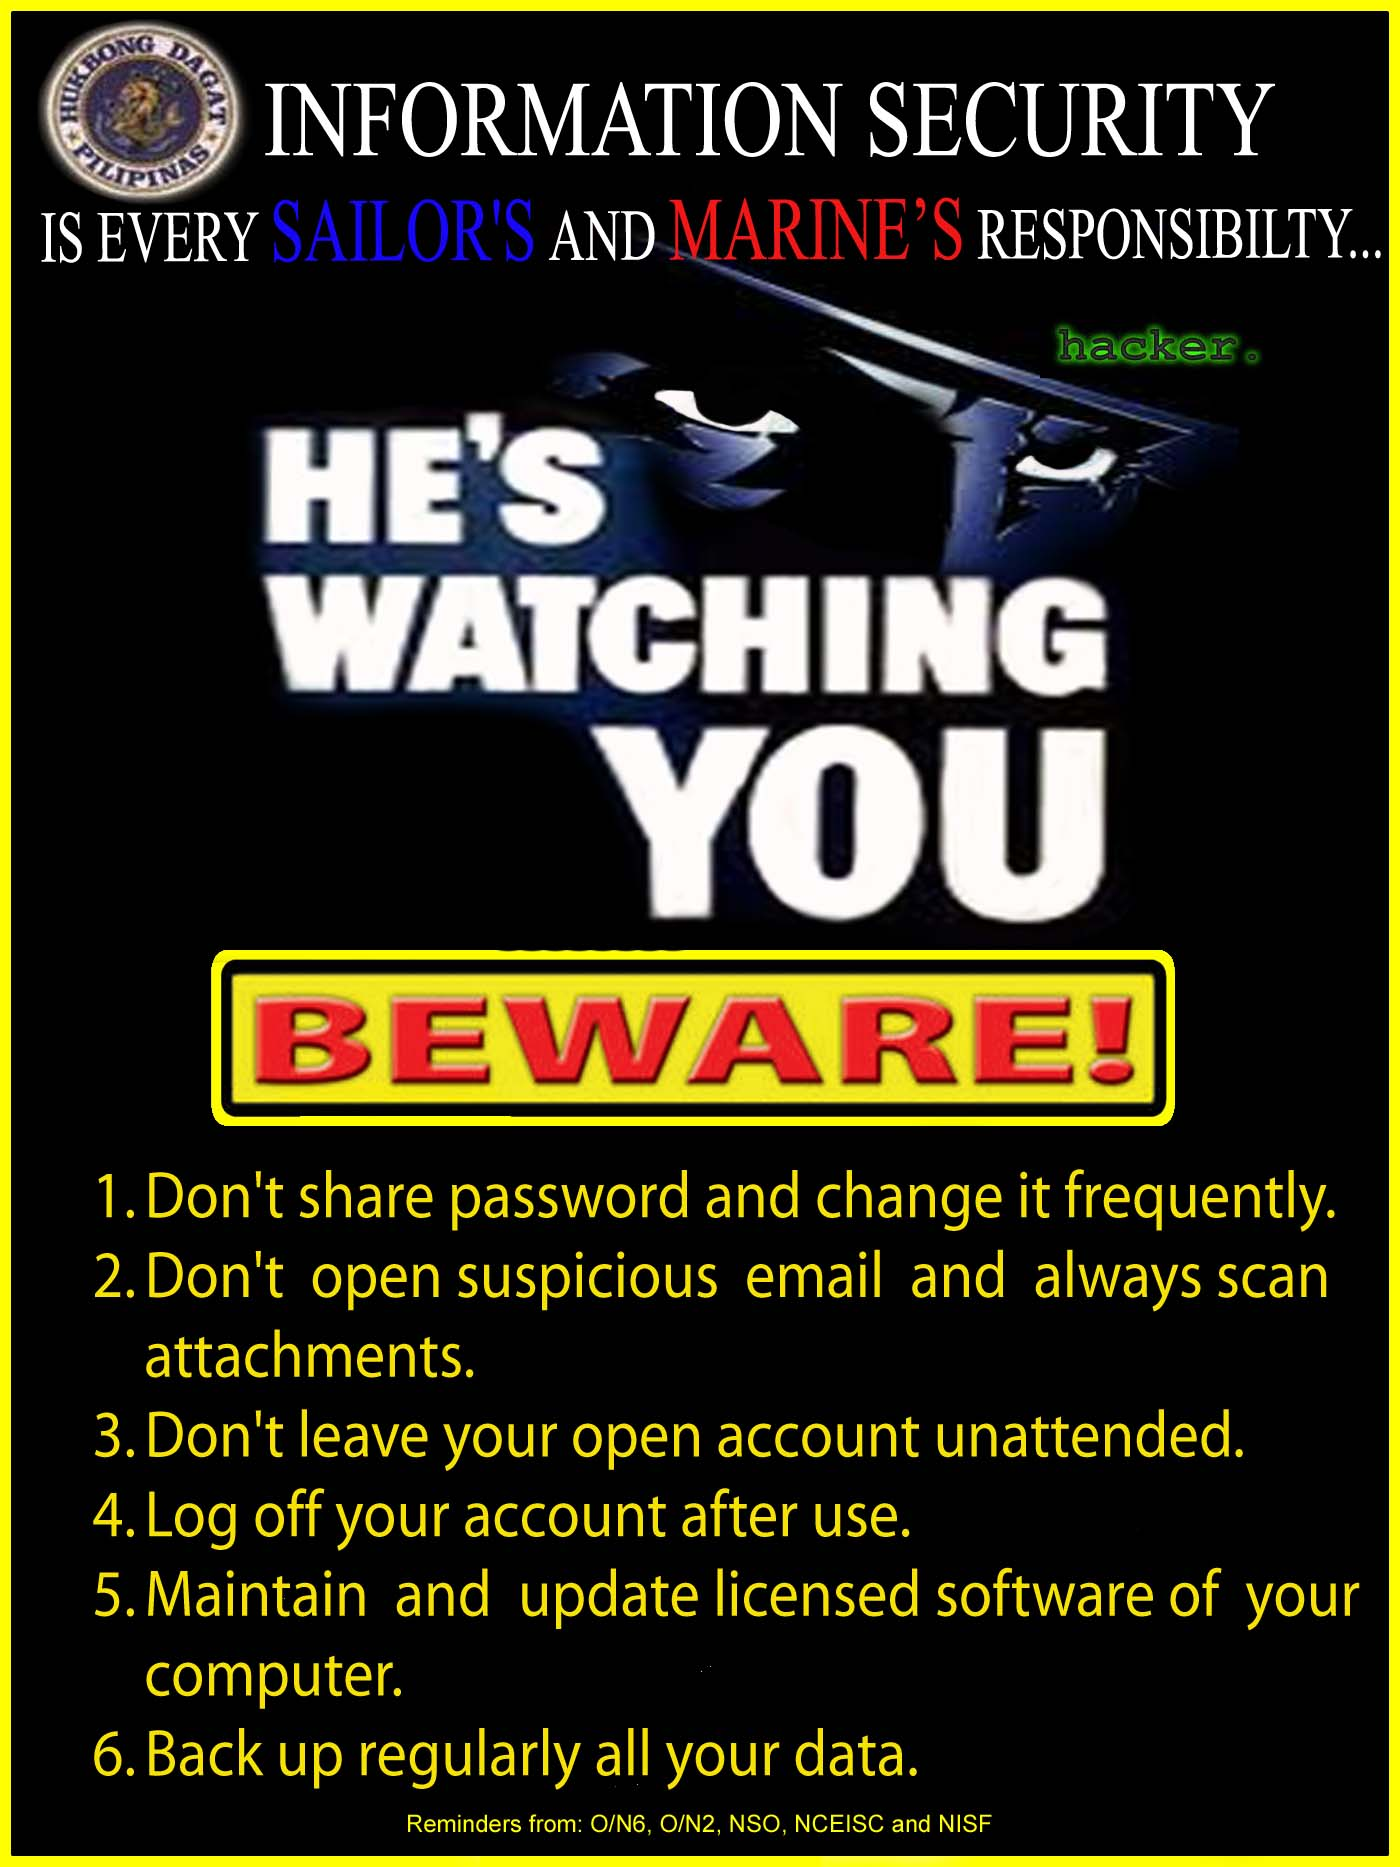 Funny Information Security Awareness Posters